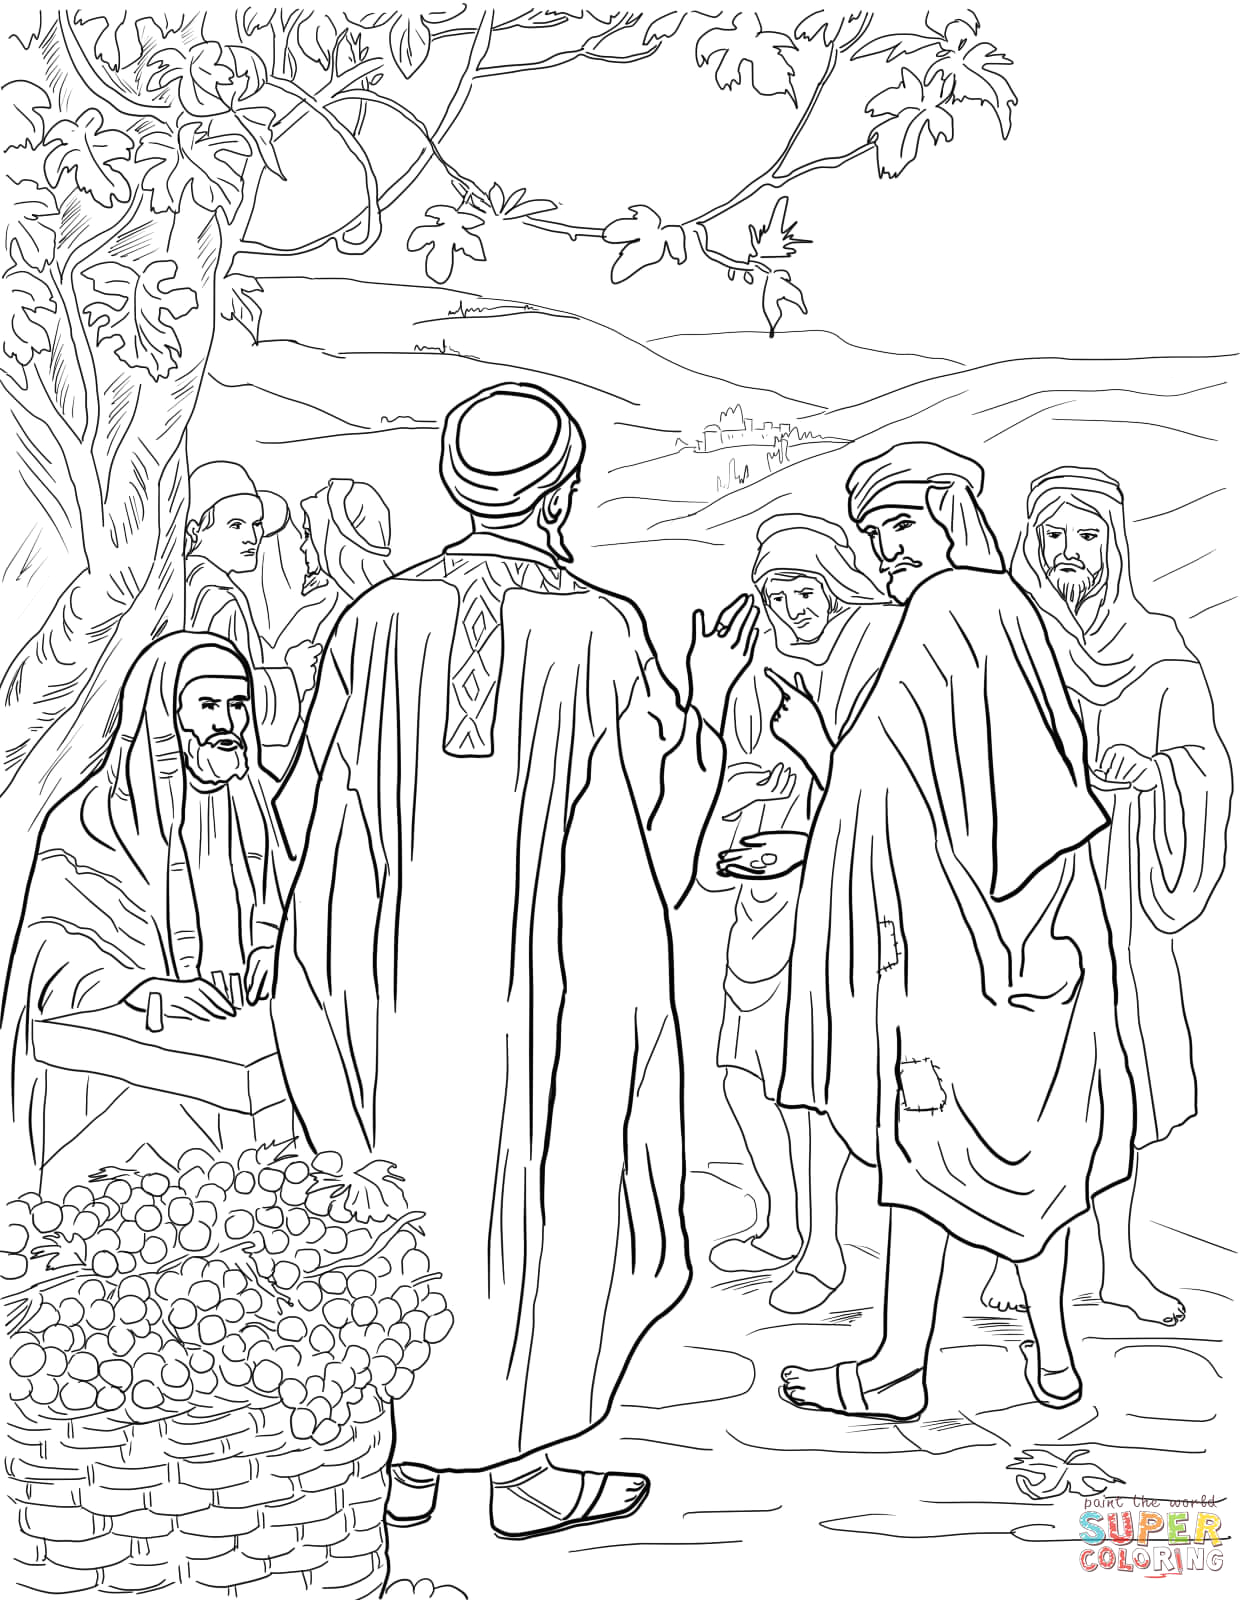 parable of the workers in the vineyard